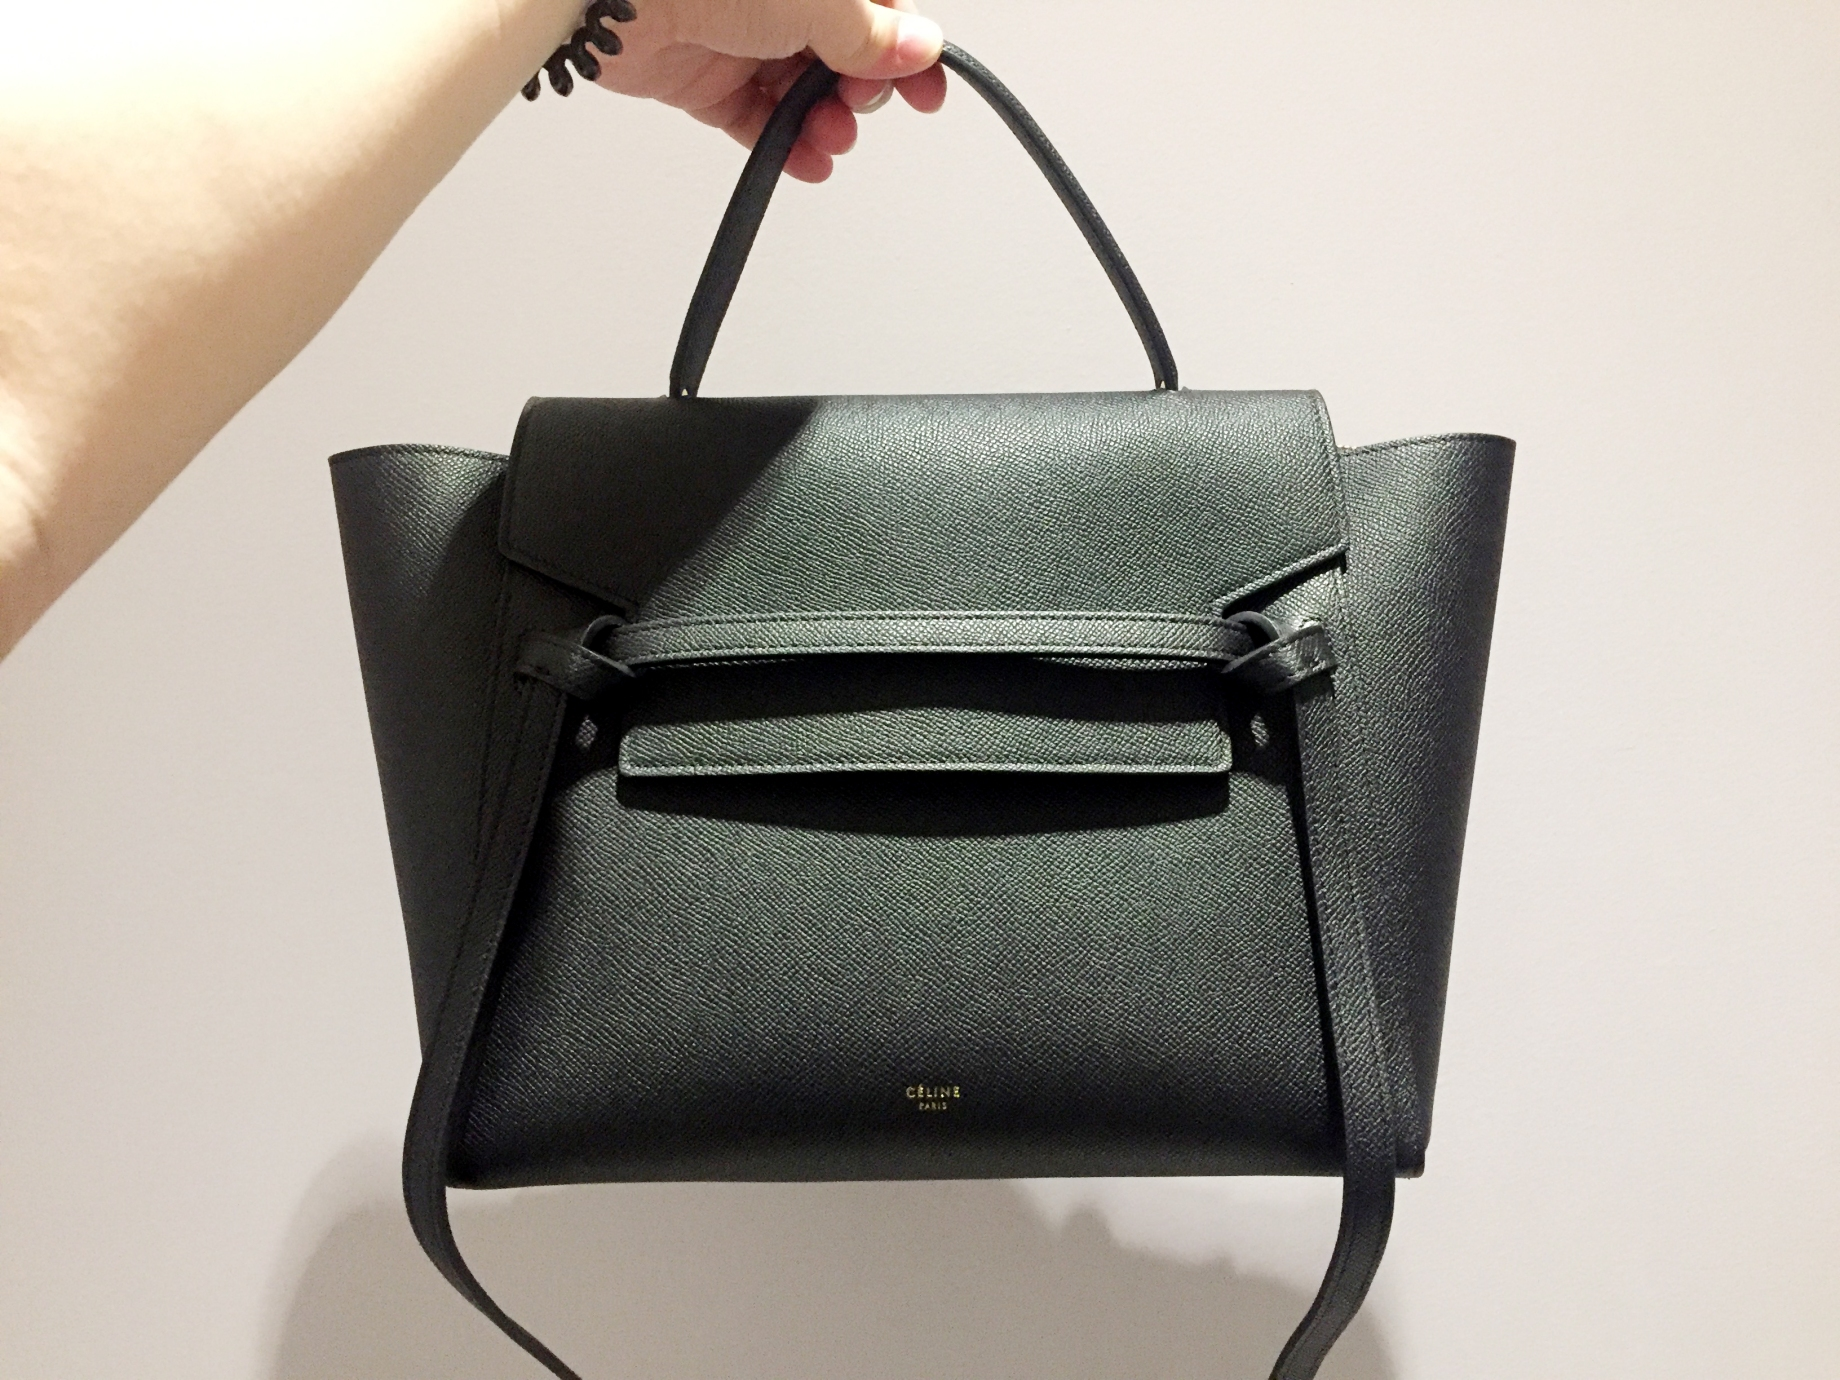 Céline Belt Bag Honest Review  c3a8ff5d9025d